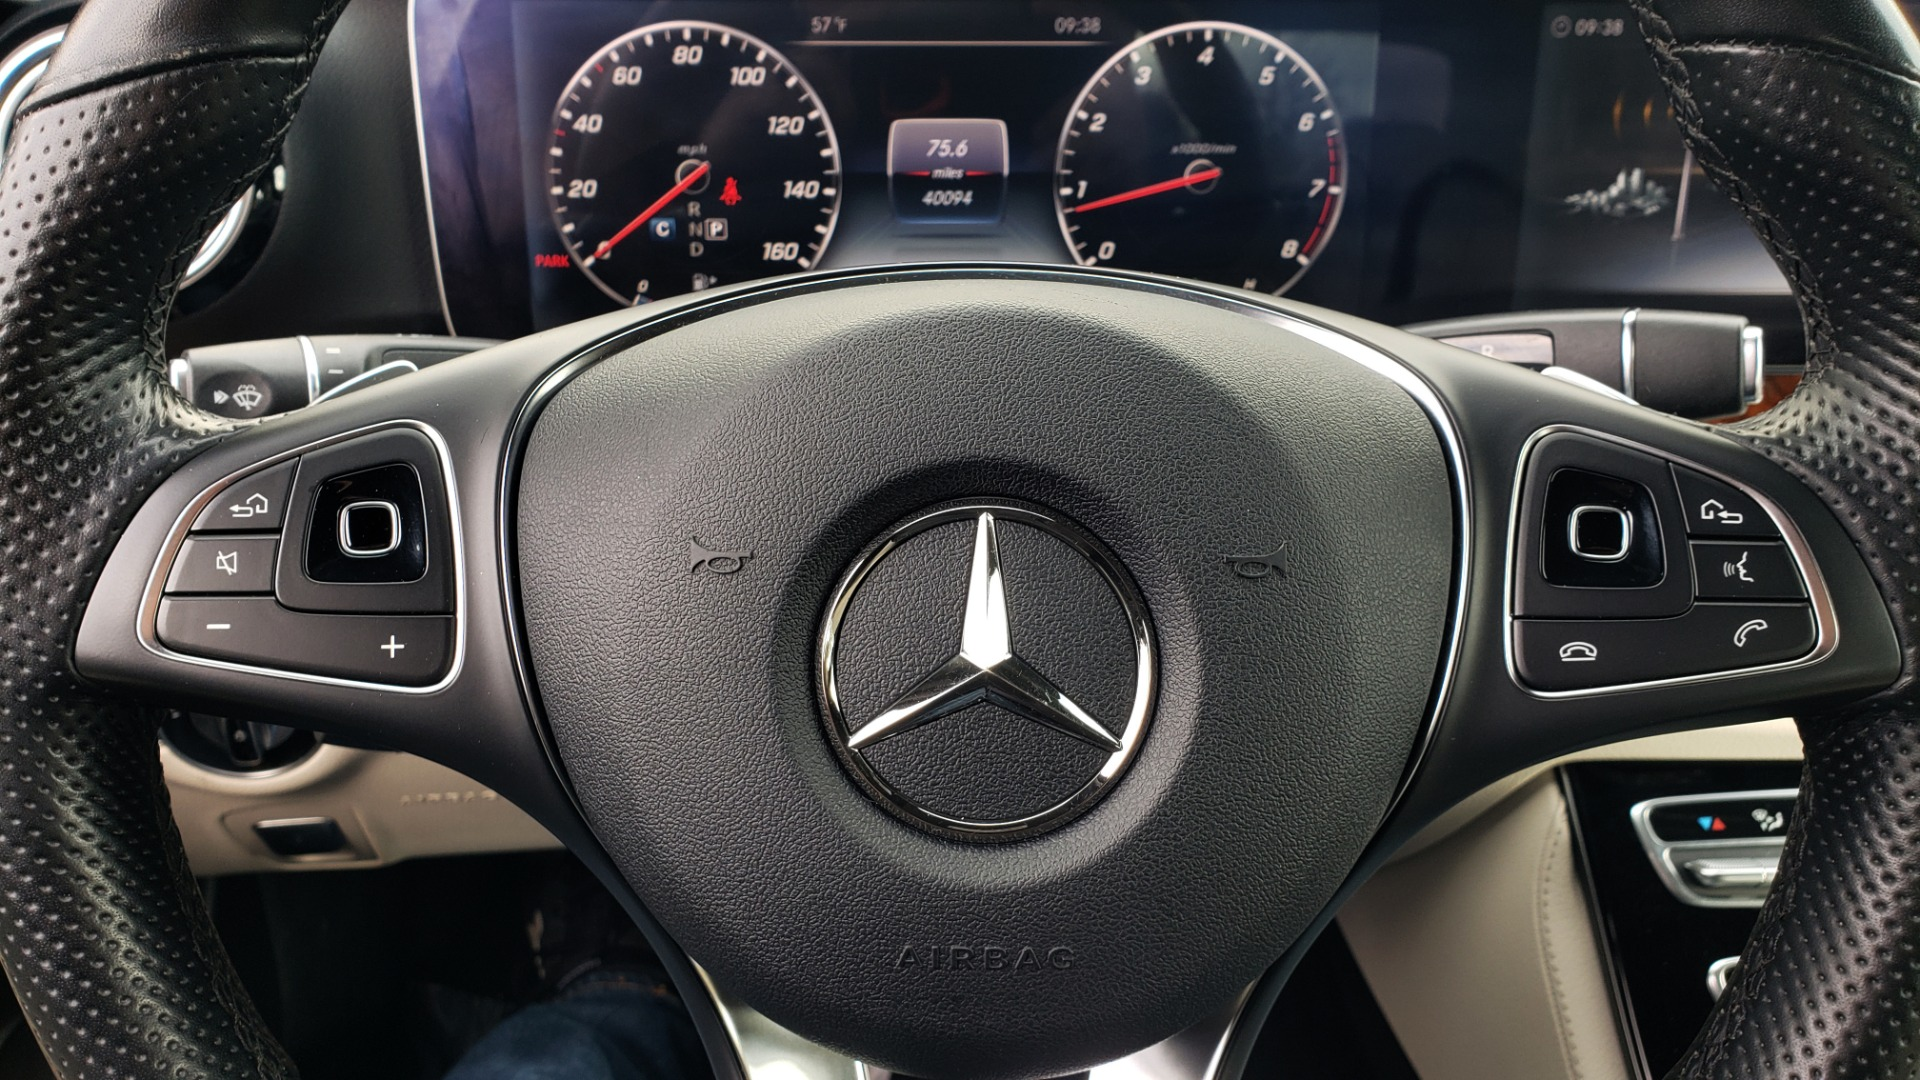 Used 2018 Mercedes-Benz E-CLASS E 300 PREM PKG 2 / NAV / PANO-ROOF / WARMTH & COMFORT PKG for sale $35,295 at Formula Imports in Charlotte NC 28227 39